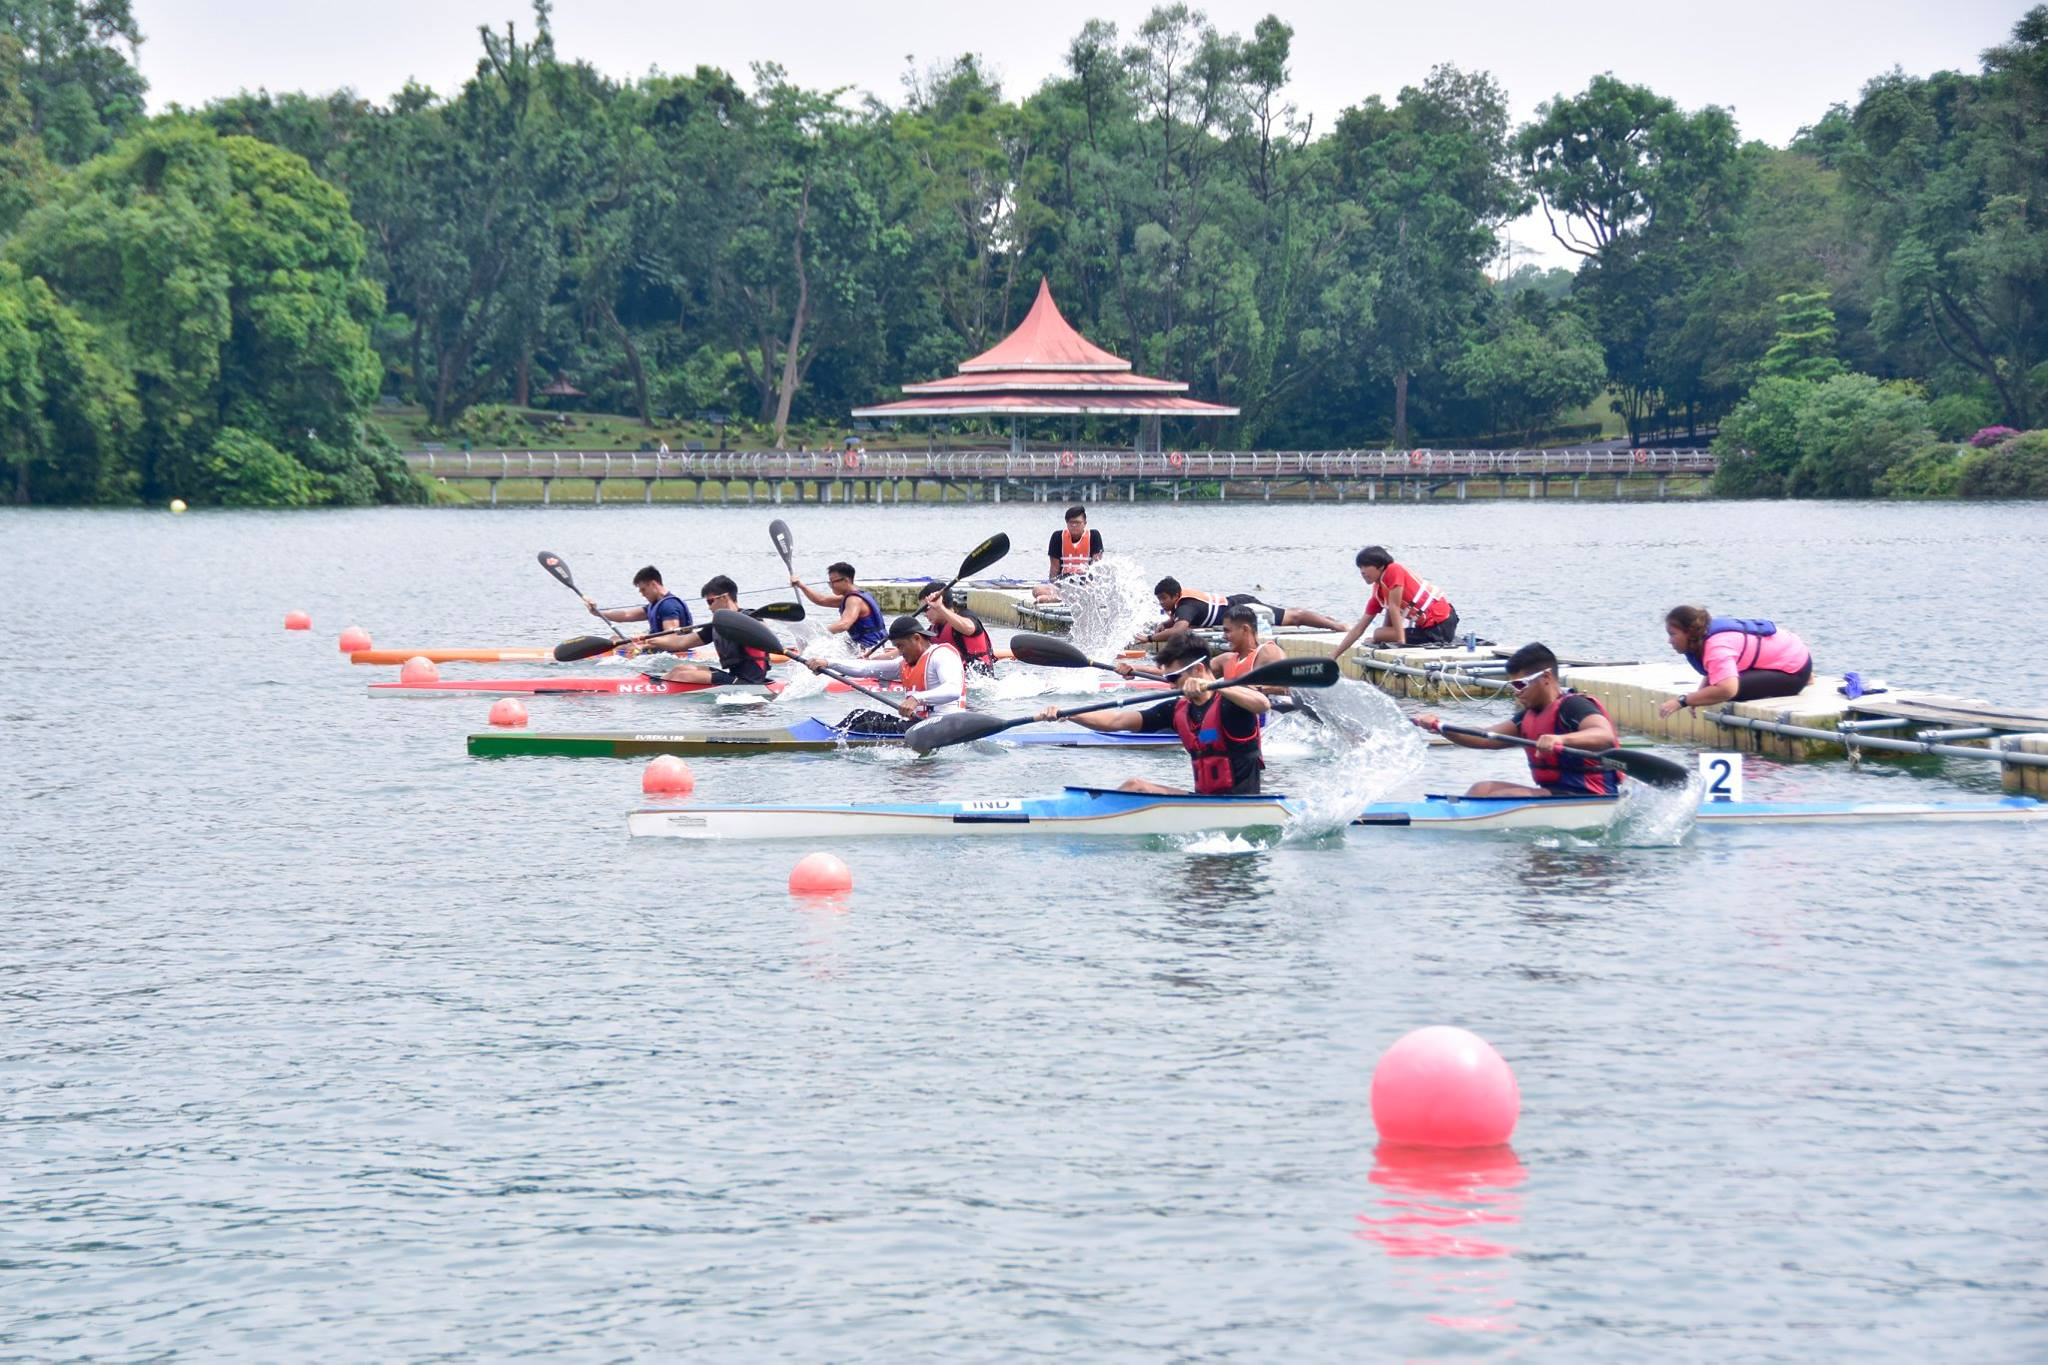 2021 SSSC National School Games Canoeing Championships - C Division